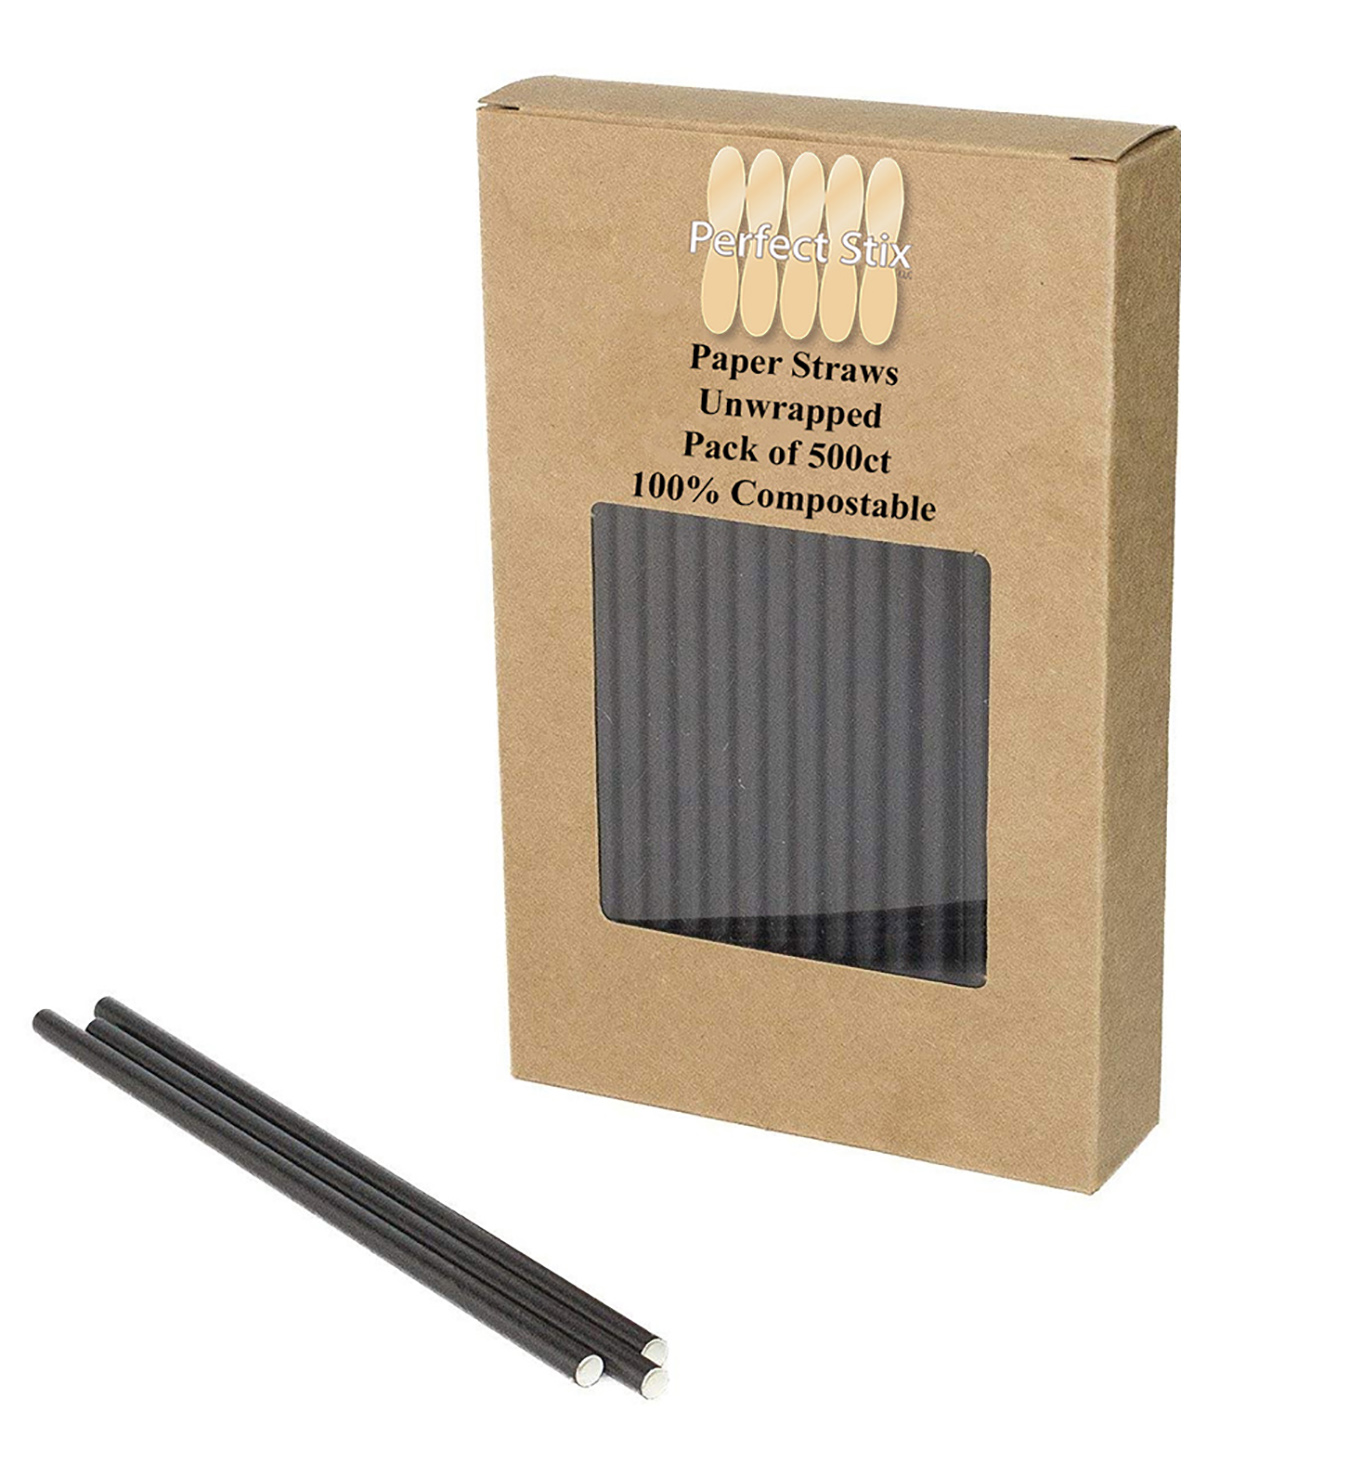 Paper Straw 7.75 Inch Unwrapped Jumbo Black -5000ct per case